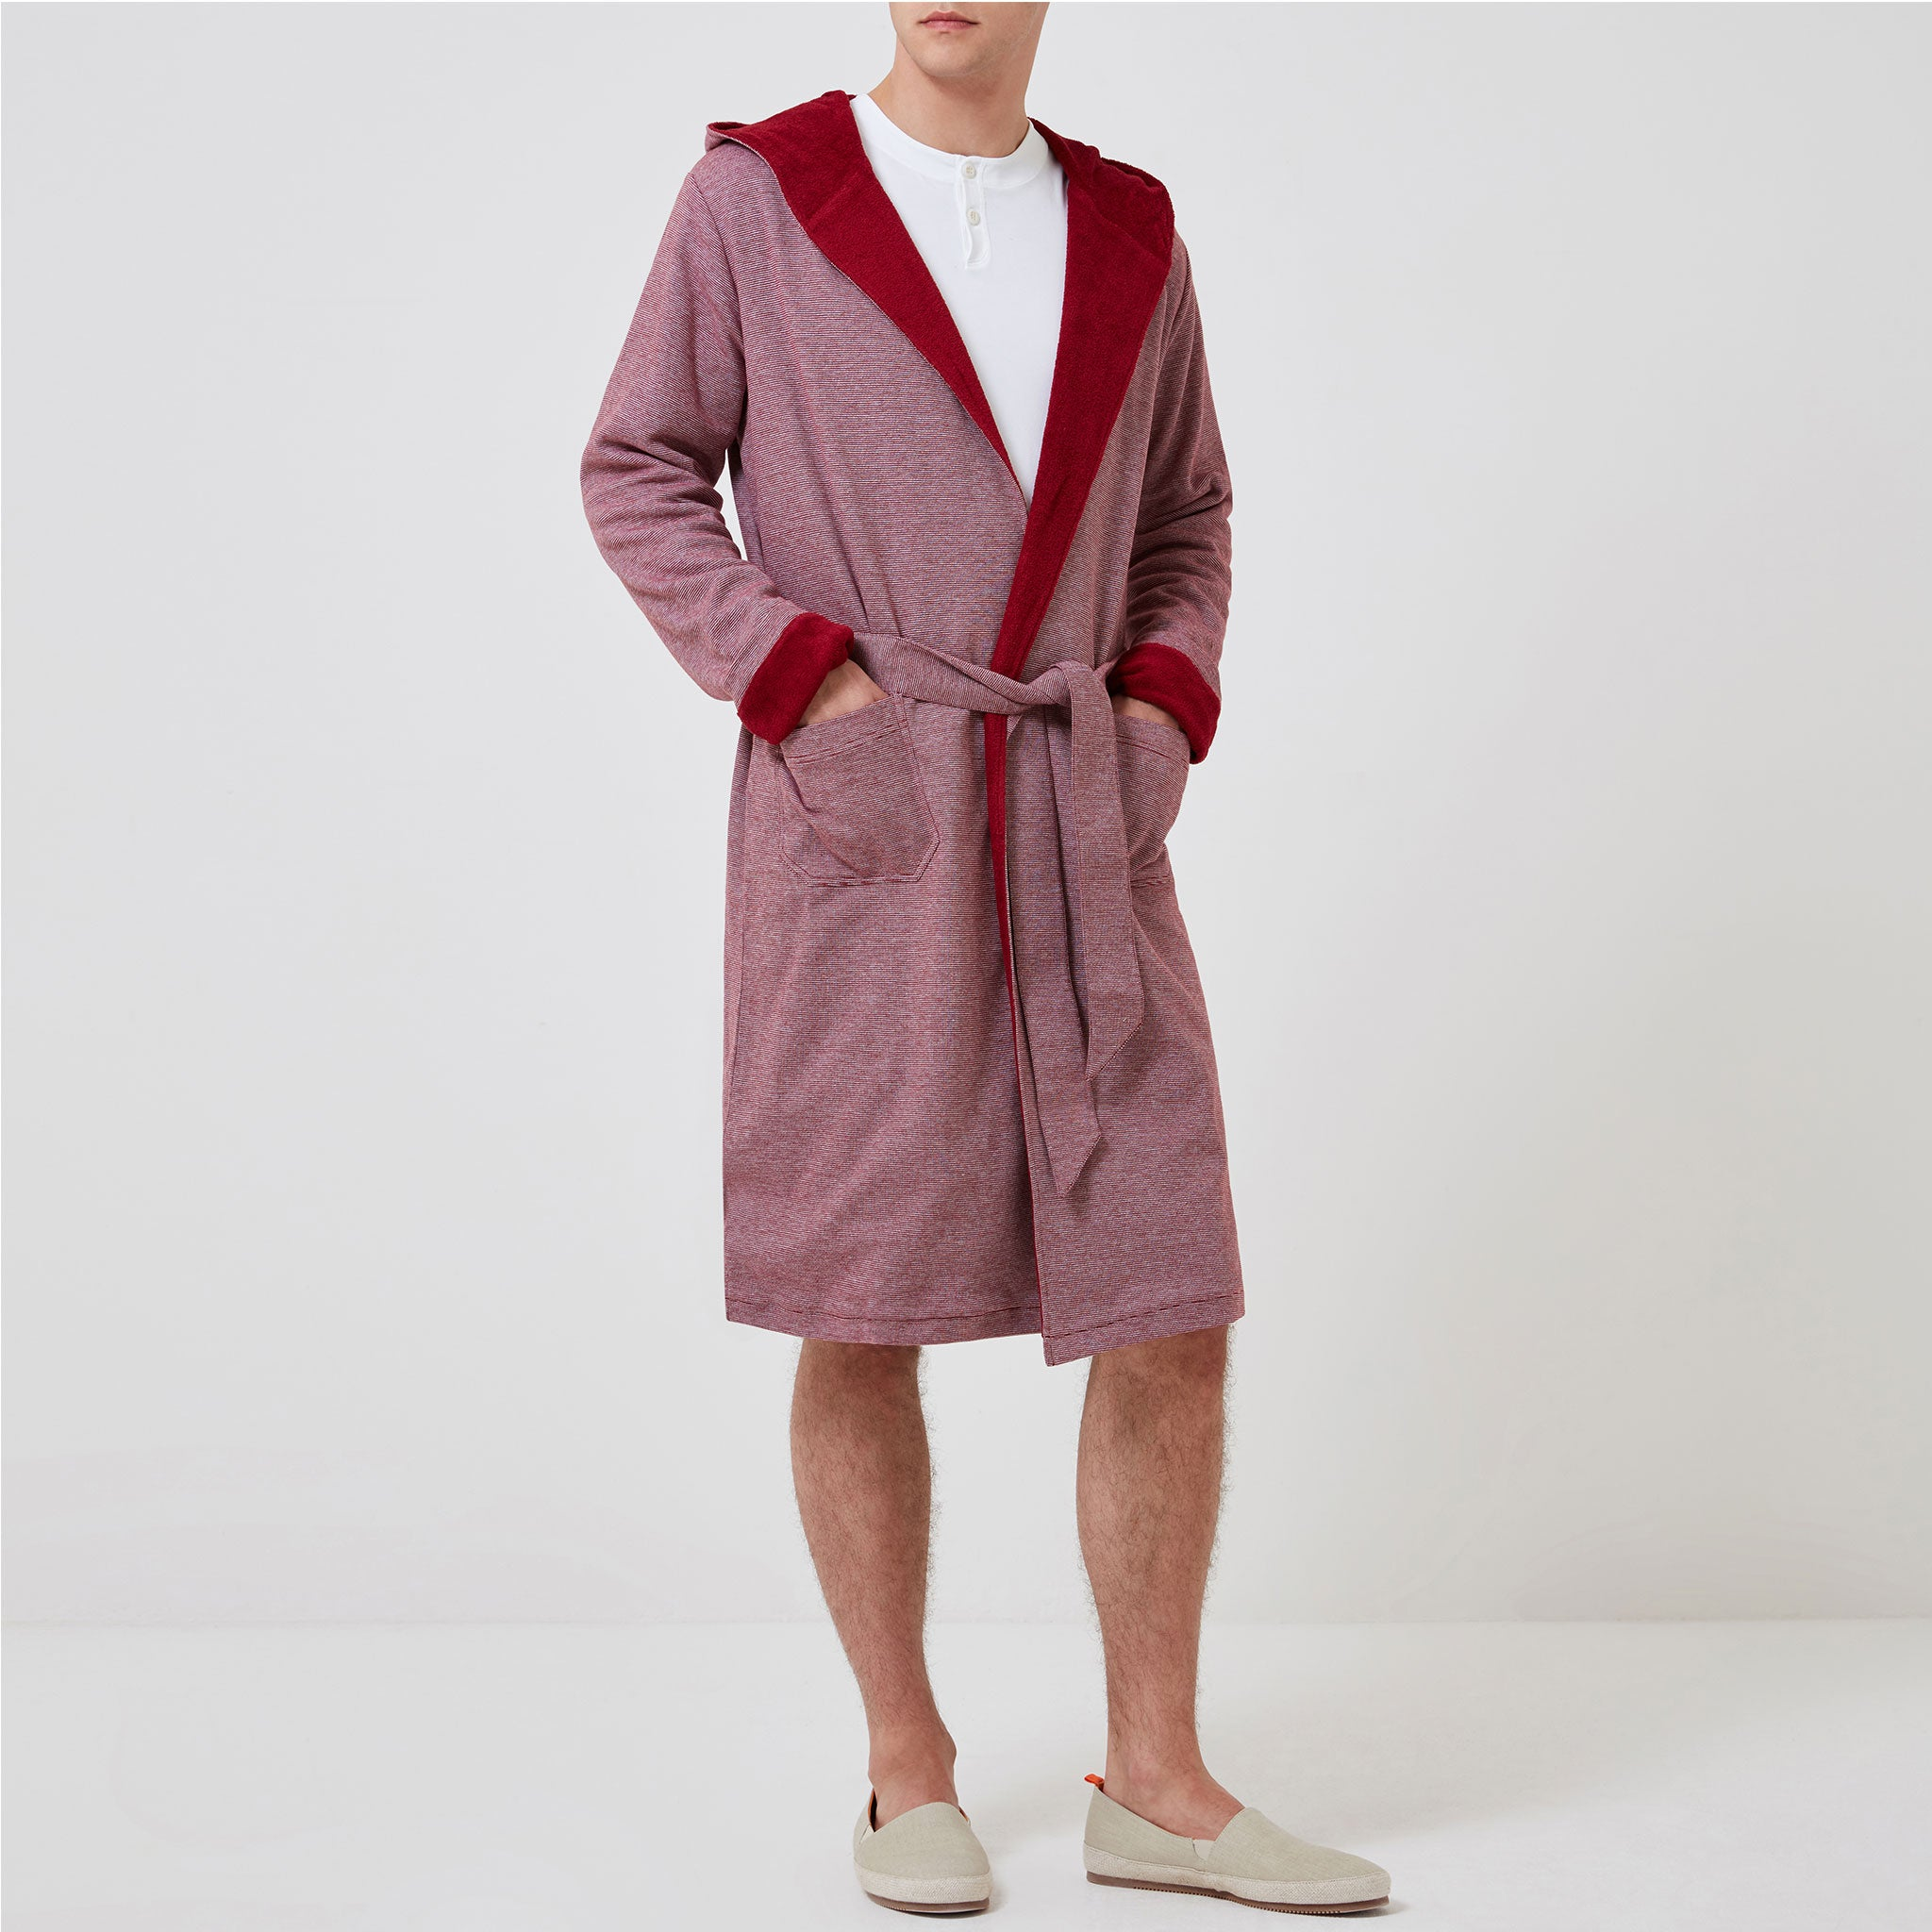 Personalised Towelling Robe - Red Stripe - Hamilton and Hare Ltd